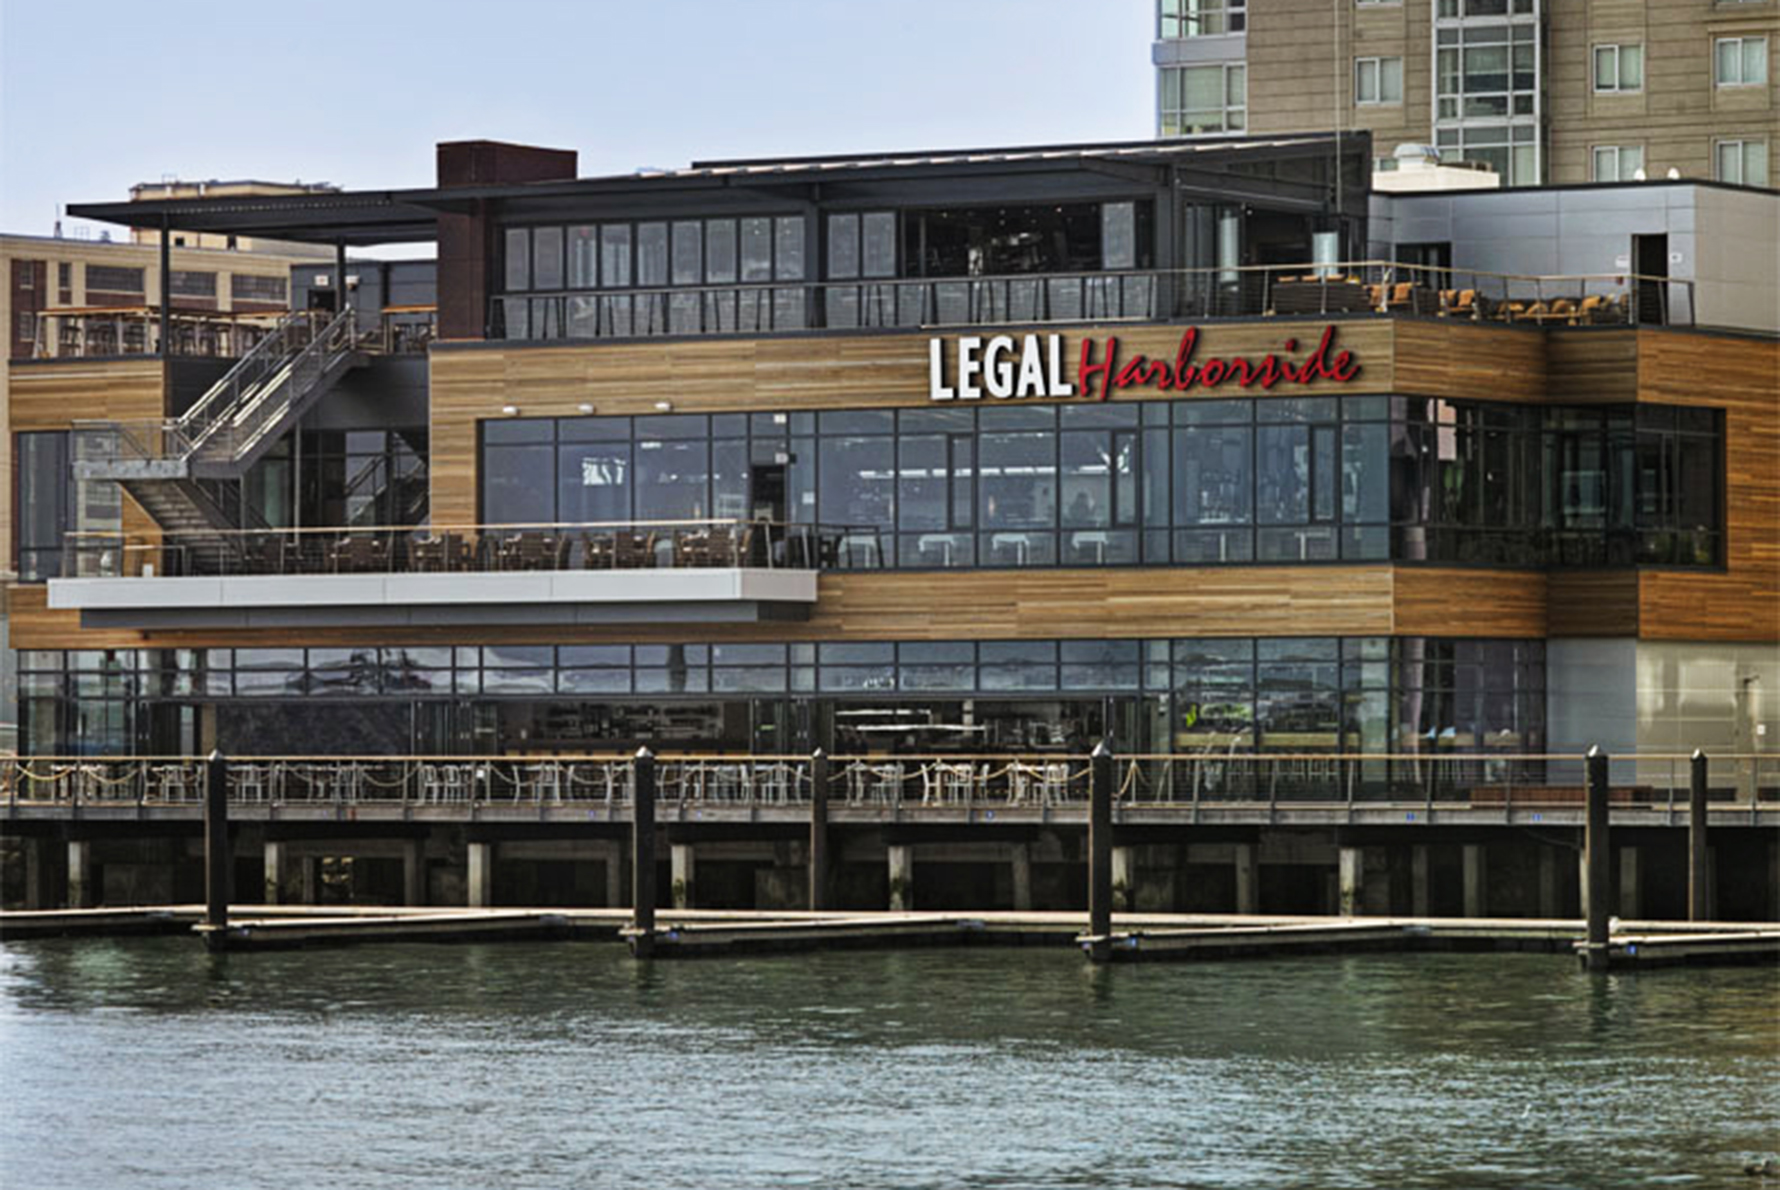 Boston Seaport Legal Harborside